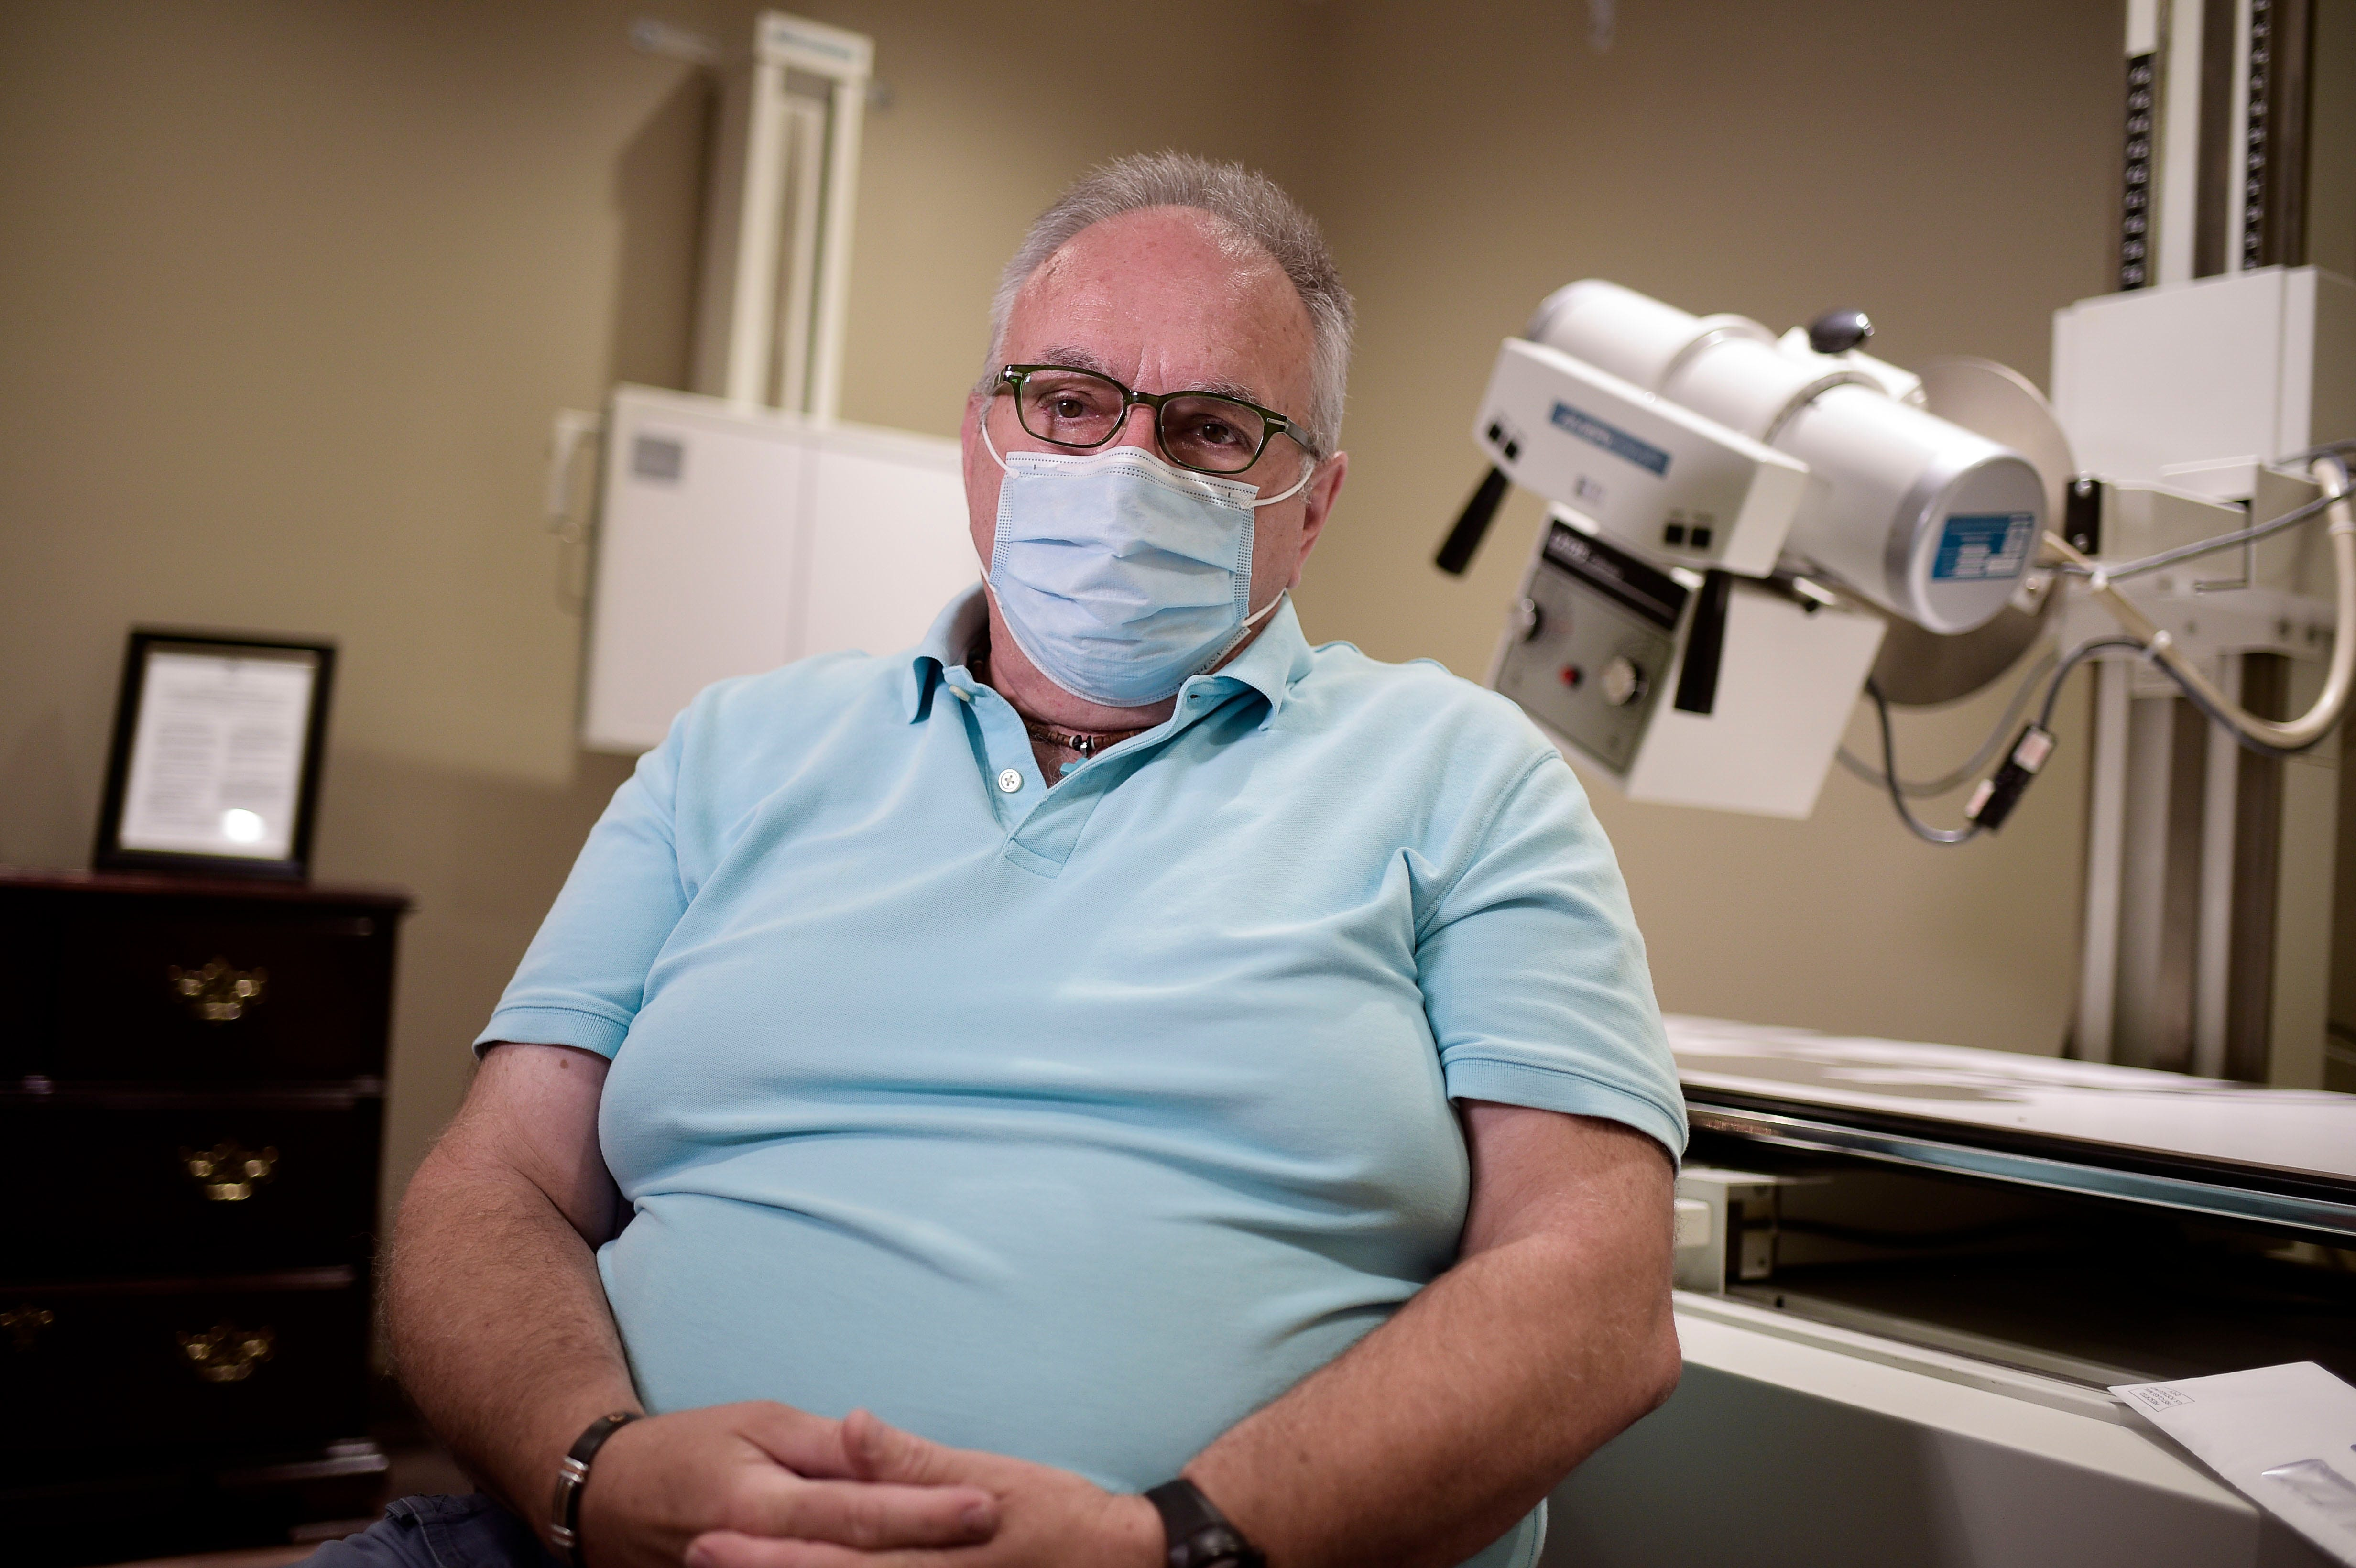 Steve Smith inside the X-ray room at the Smiddy Clinic in Wise, Virginia. Smith, a former police officer, has been experiencing long-haul symptoms after contracting COVID-19 late last year.